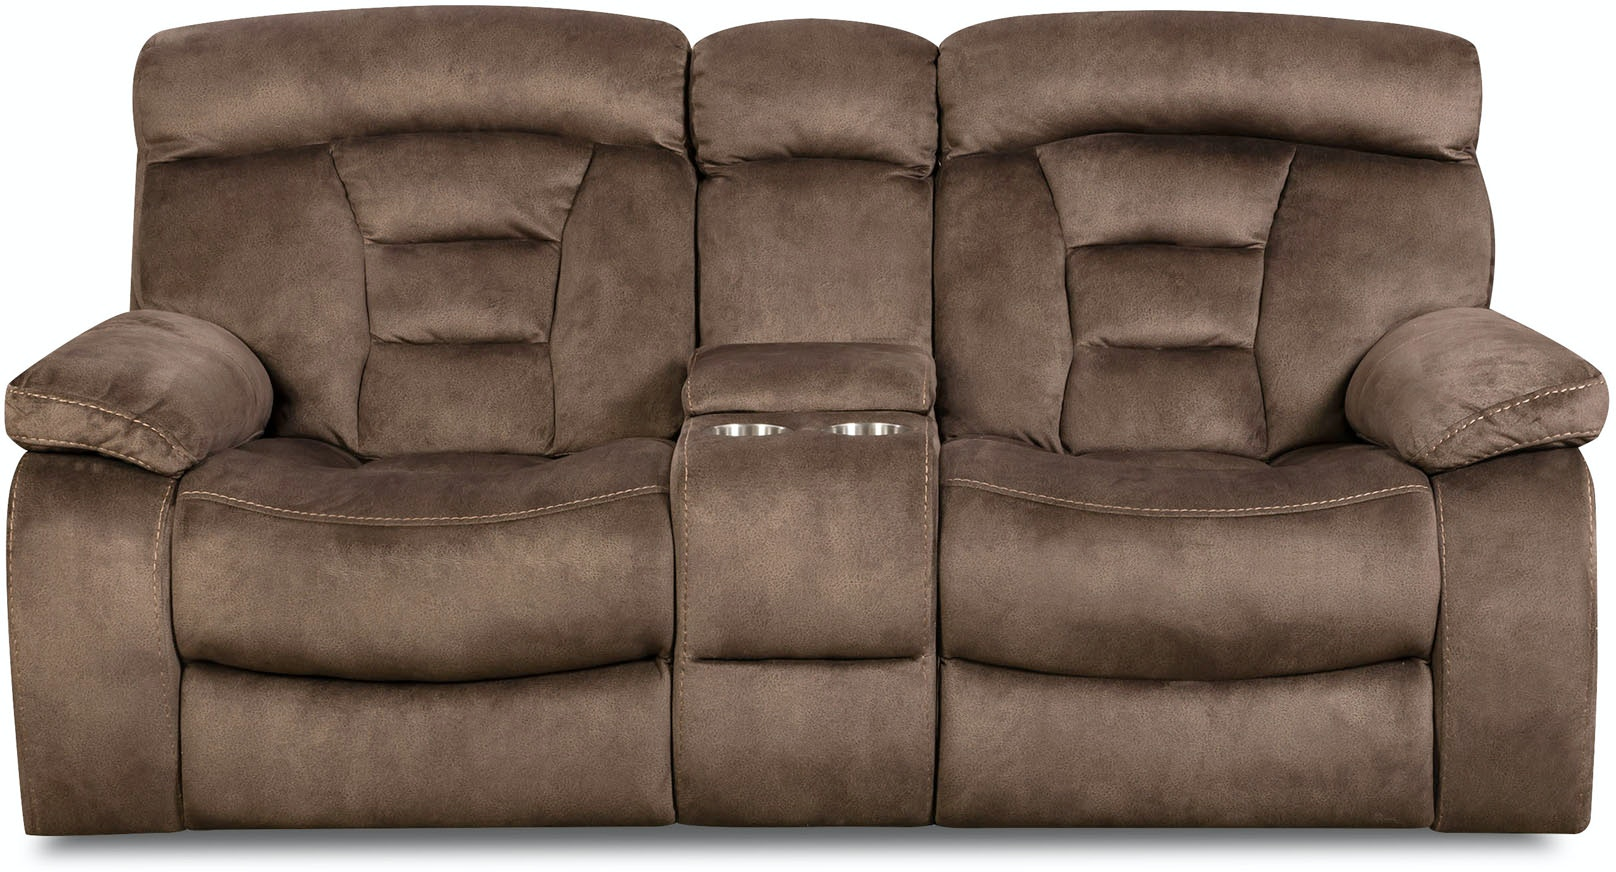 tan wayfair reviews furniture z la leather loveseat burton boy pdx